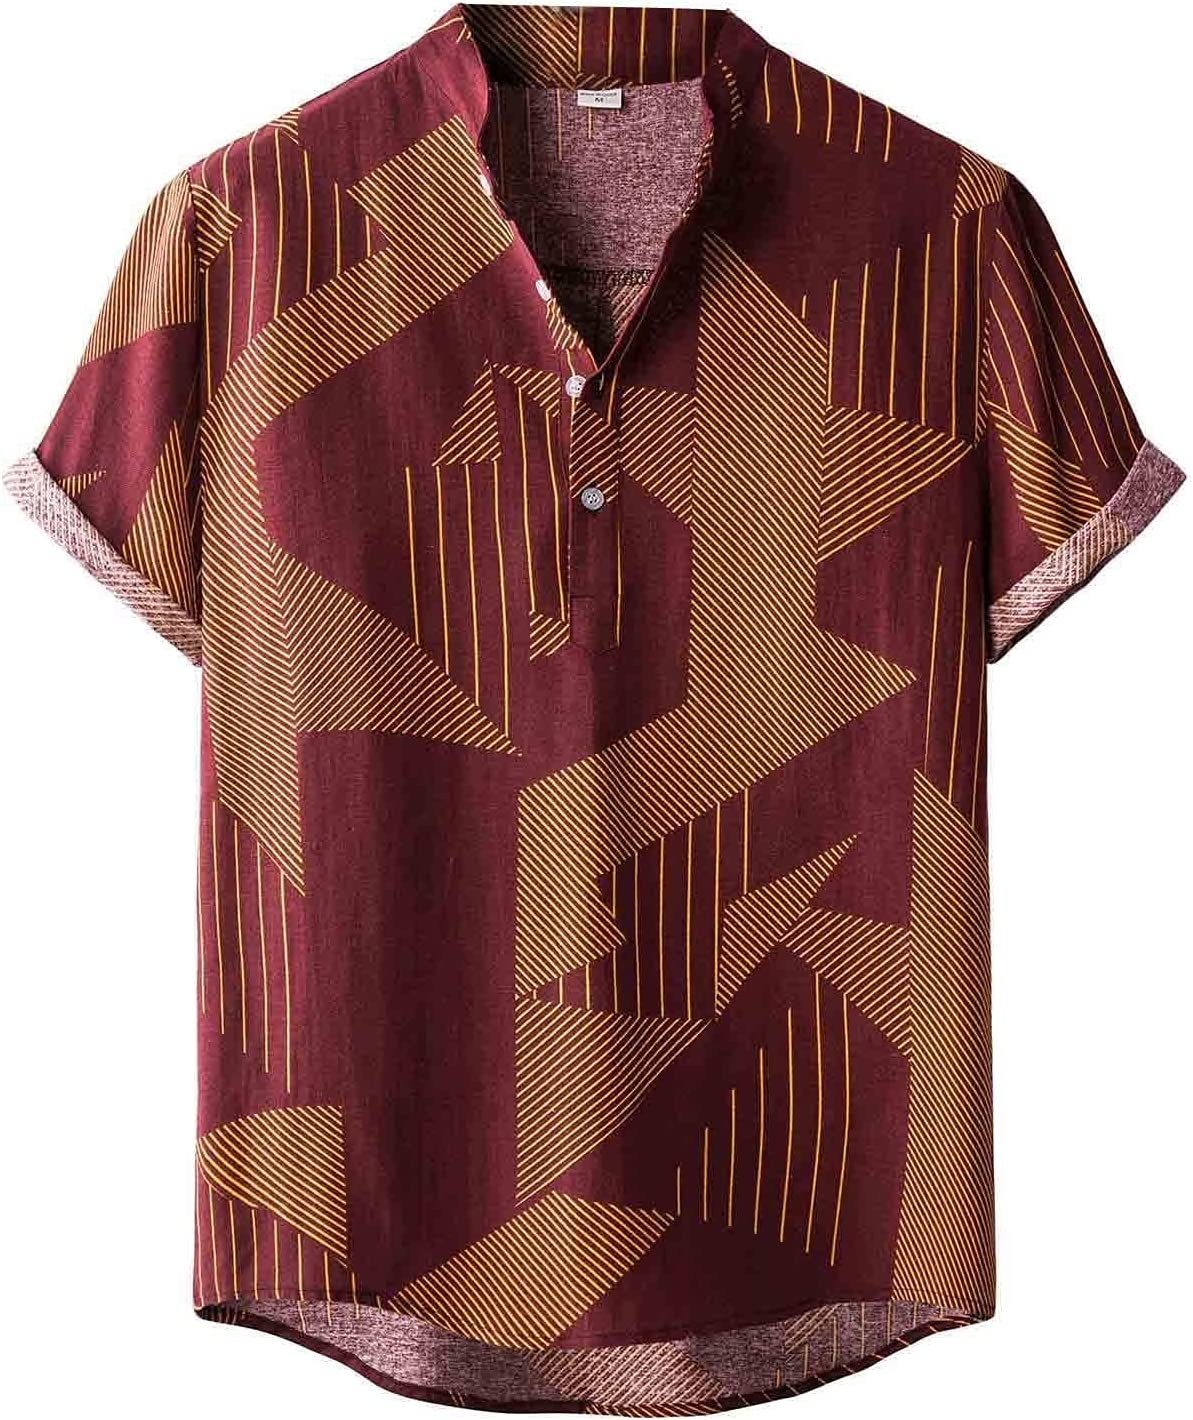 JJZXC Summer Fashion New Men Sleeve Limited Online limited product time for free shipping Shirts Vintage Ethnic Short